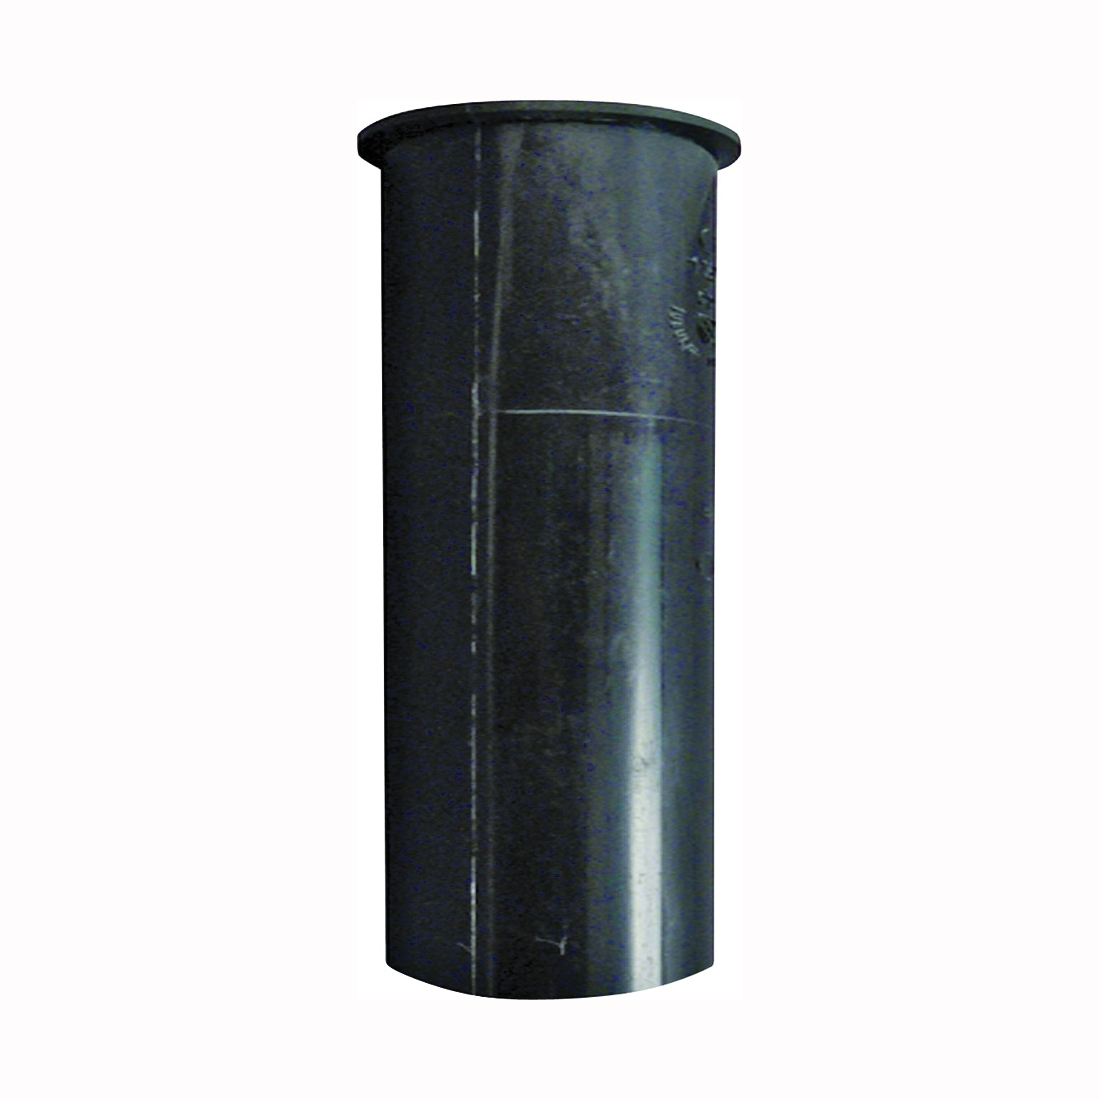 Picture of Plumb Pak PP906B Sink Tailpiece, 1-1/2 in, 12 in L, PVC, Black